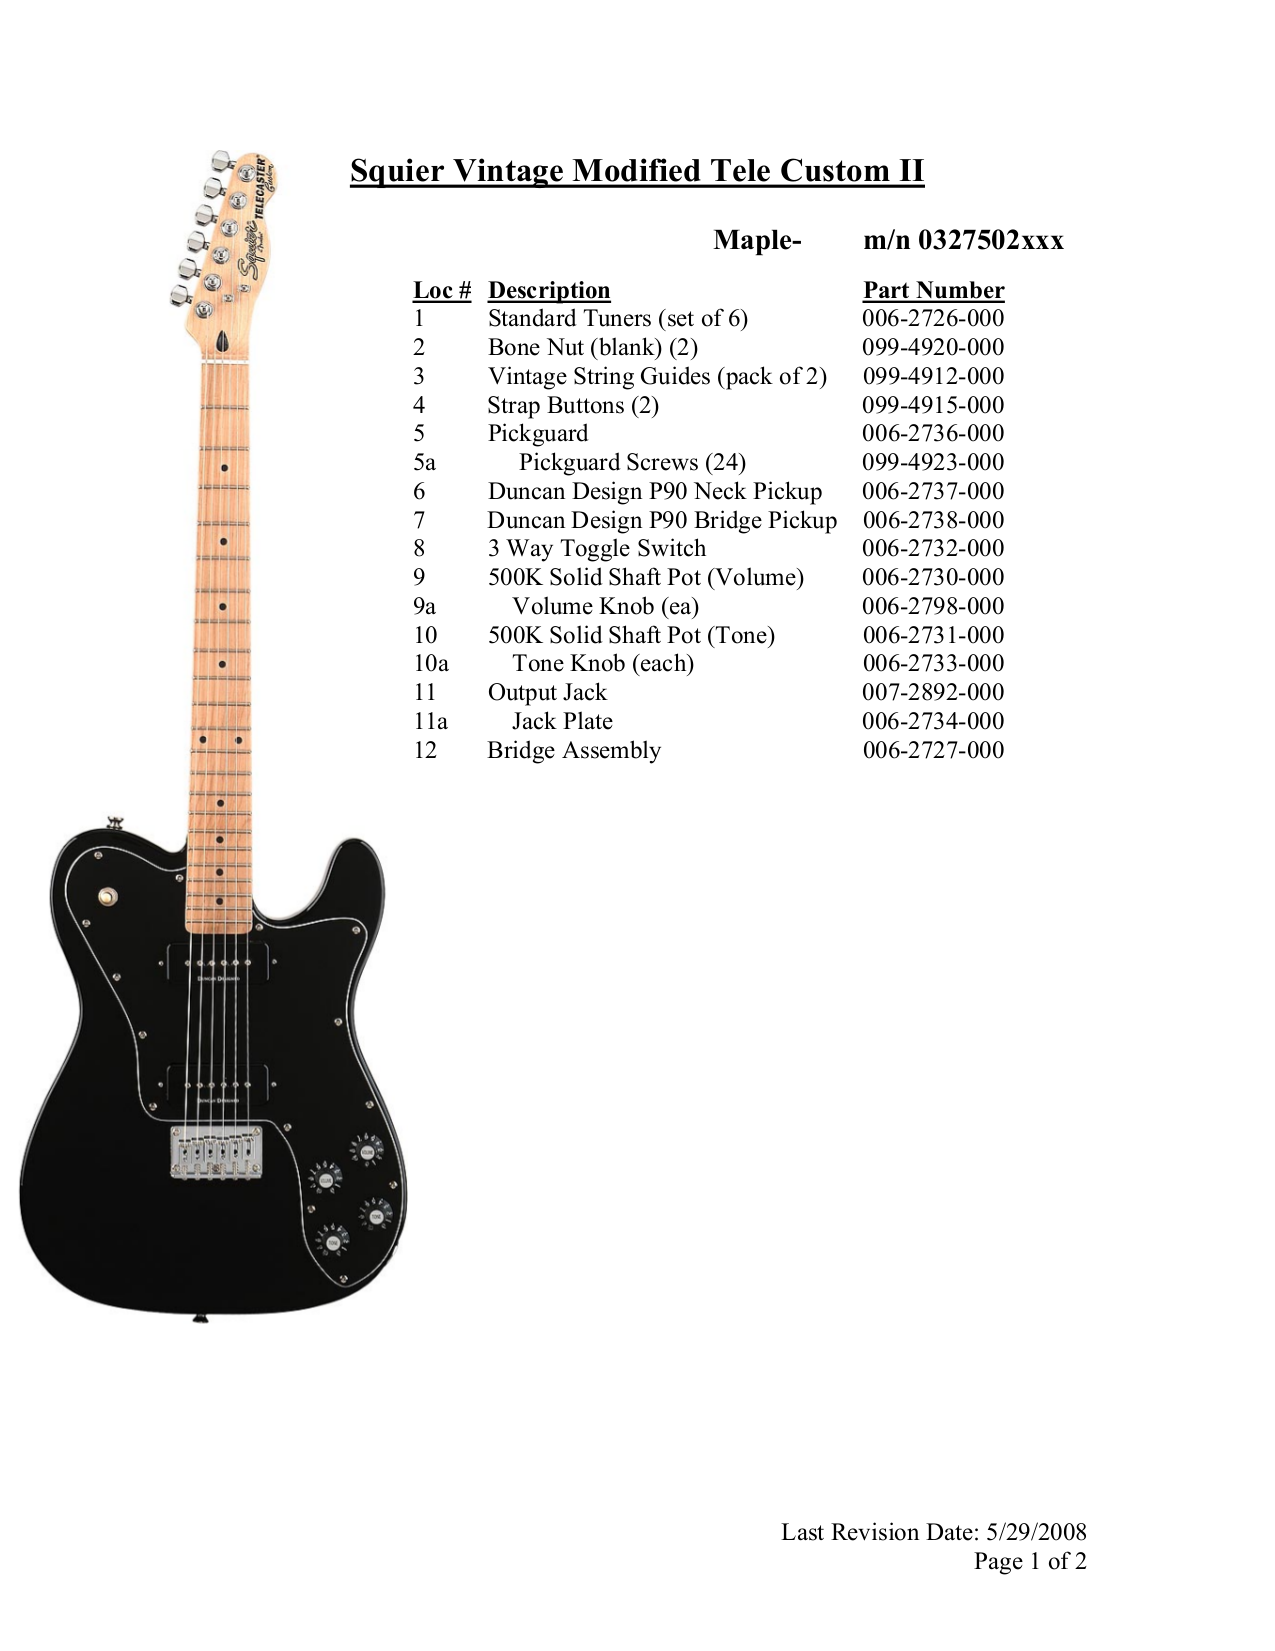 Squier Telecaster Custom Ii Wiring Diagram Solutions Fender Free Pdf For Vintage Modified Tele Guitar New 72 Deluxe Prepossessing